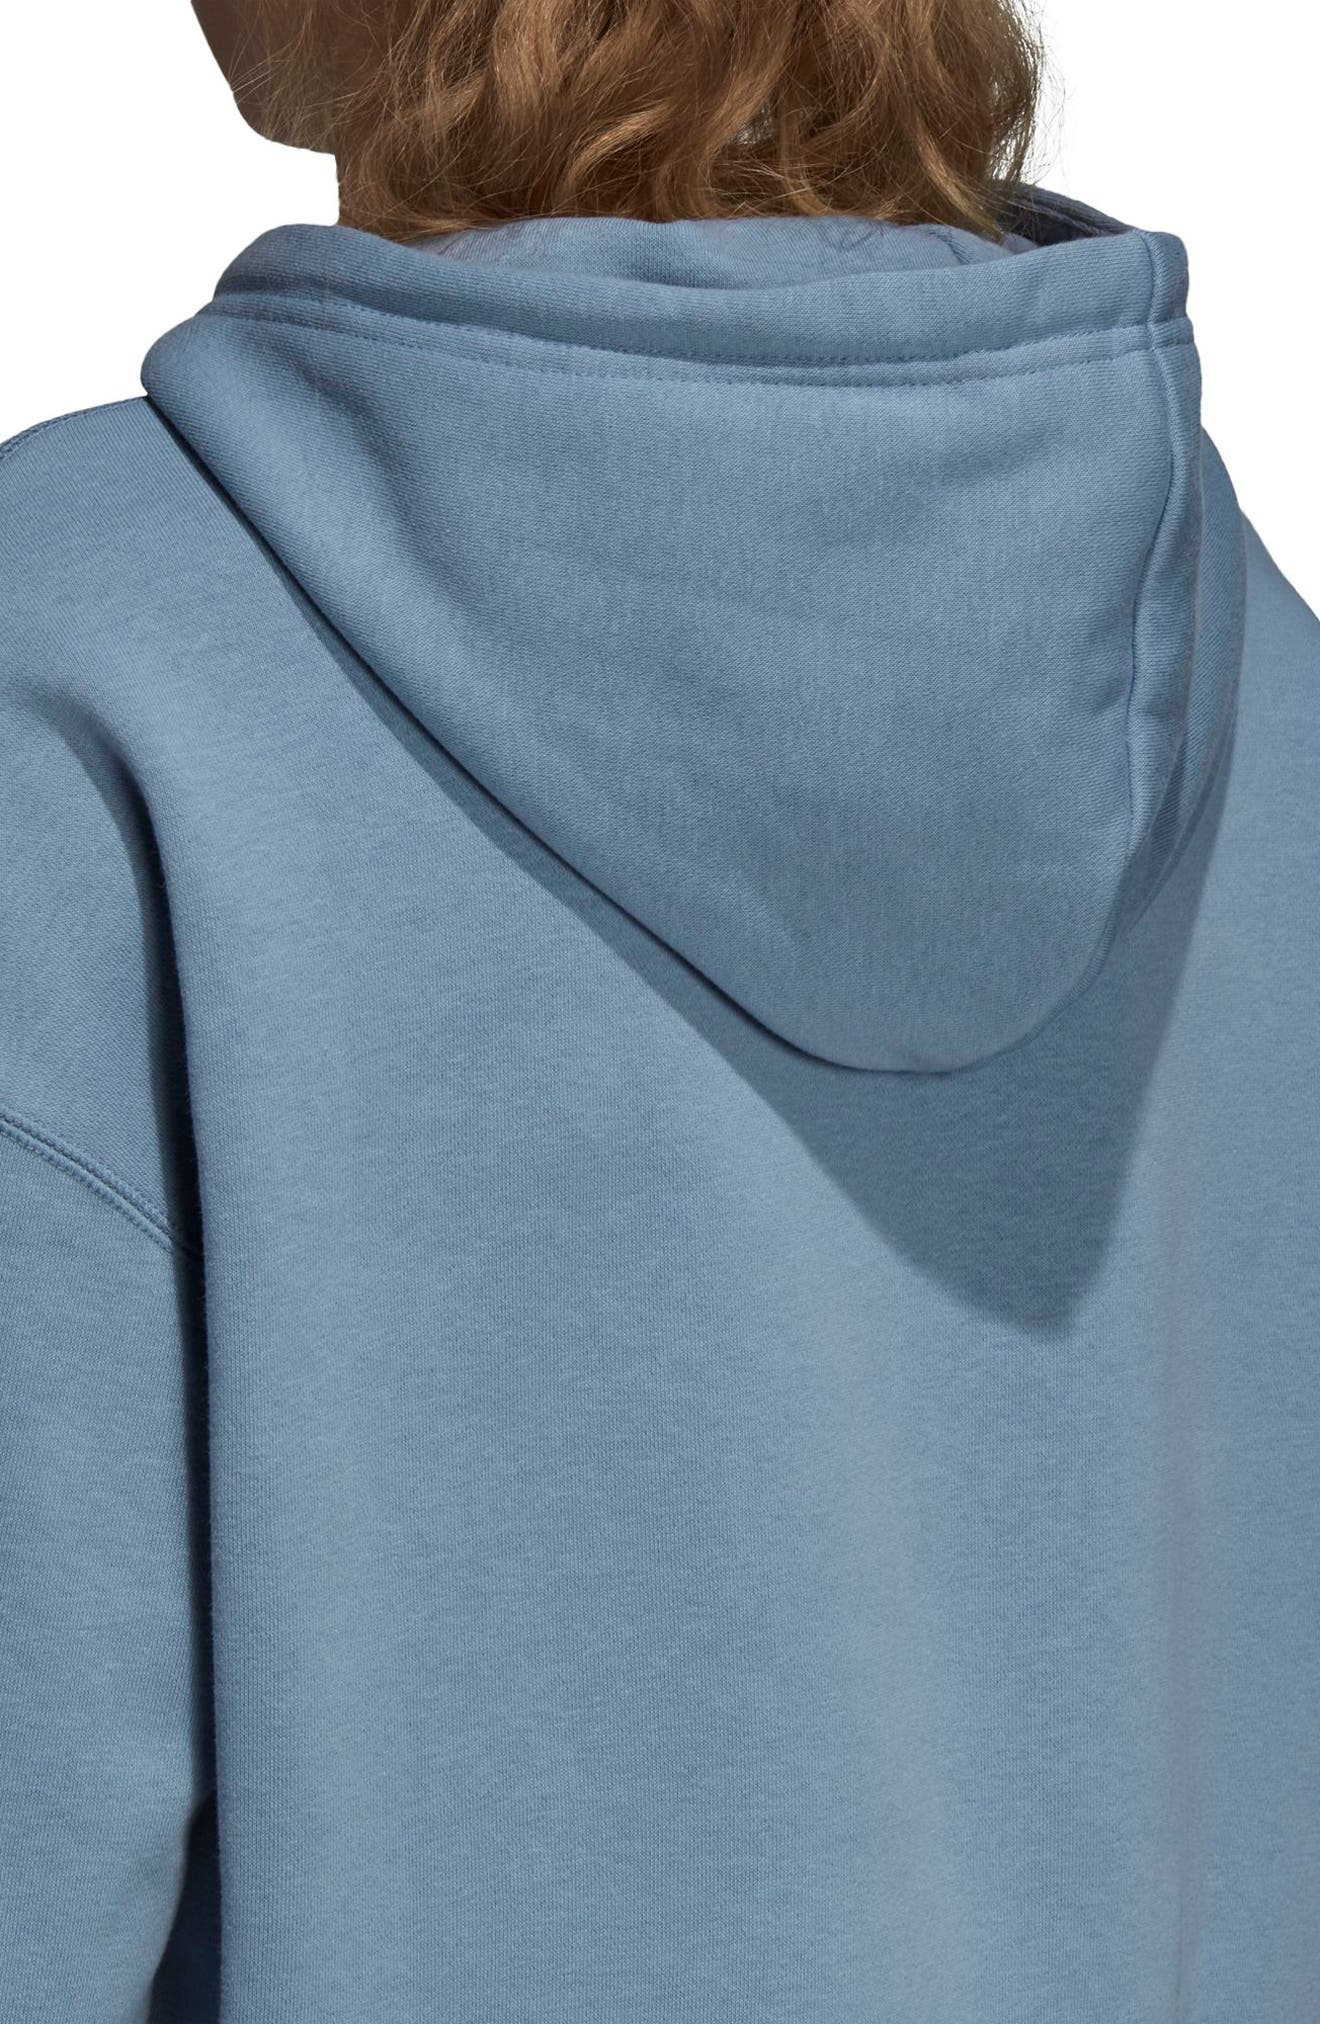 adidas Active Icons Crop Hoodie,                             Alternate thumbnail 5, color,                             060